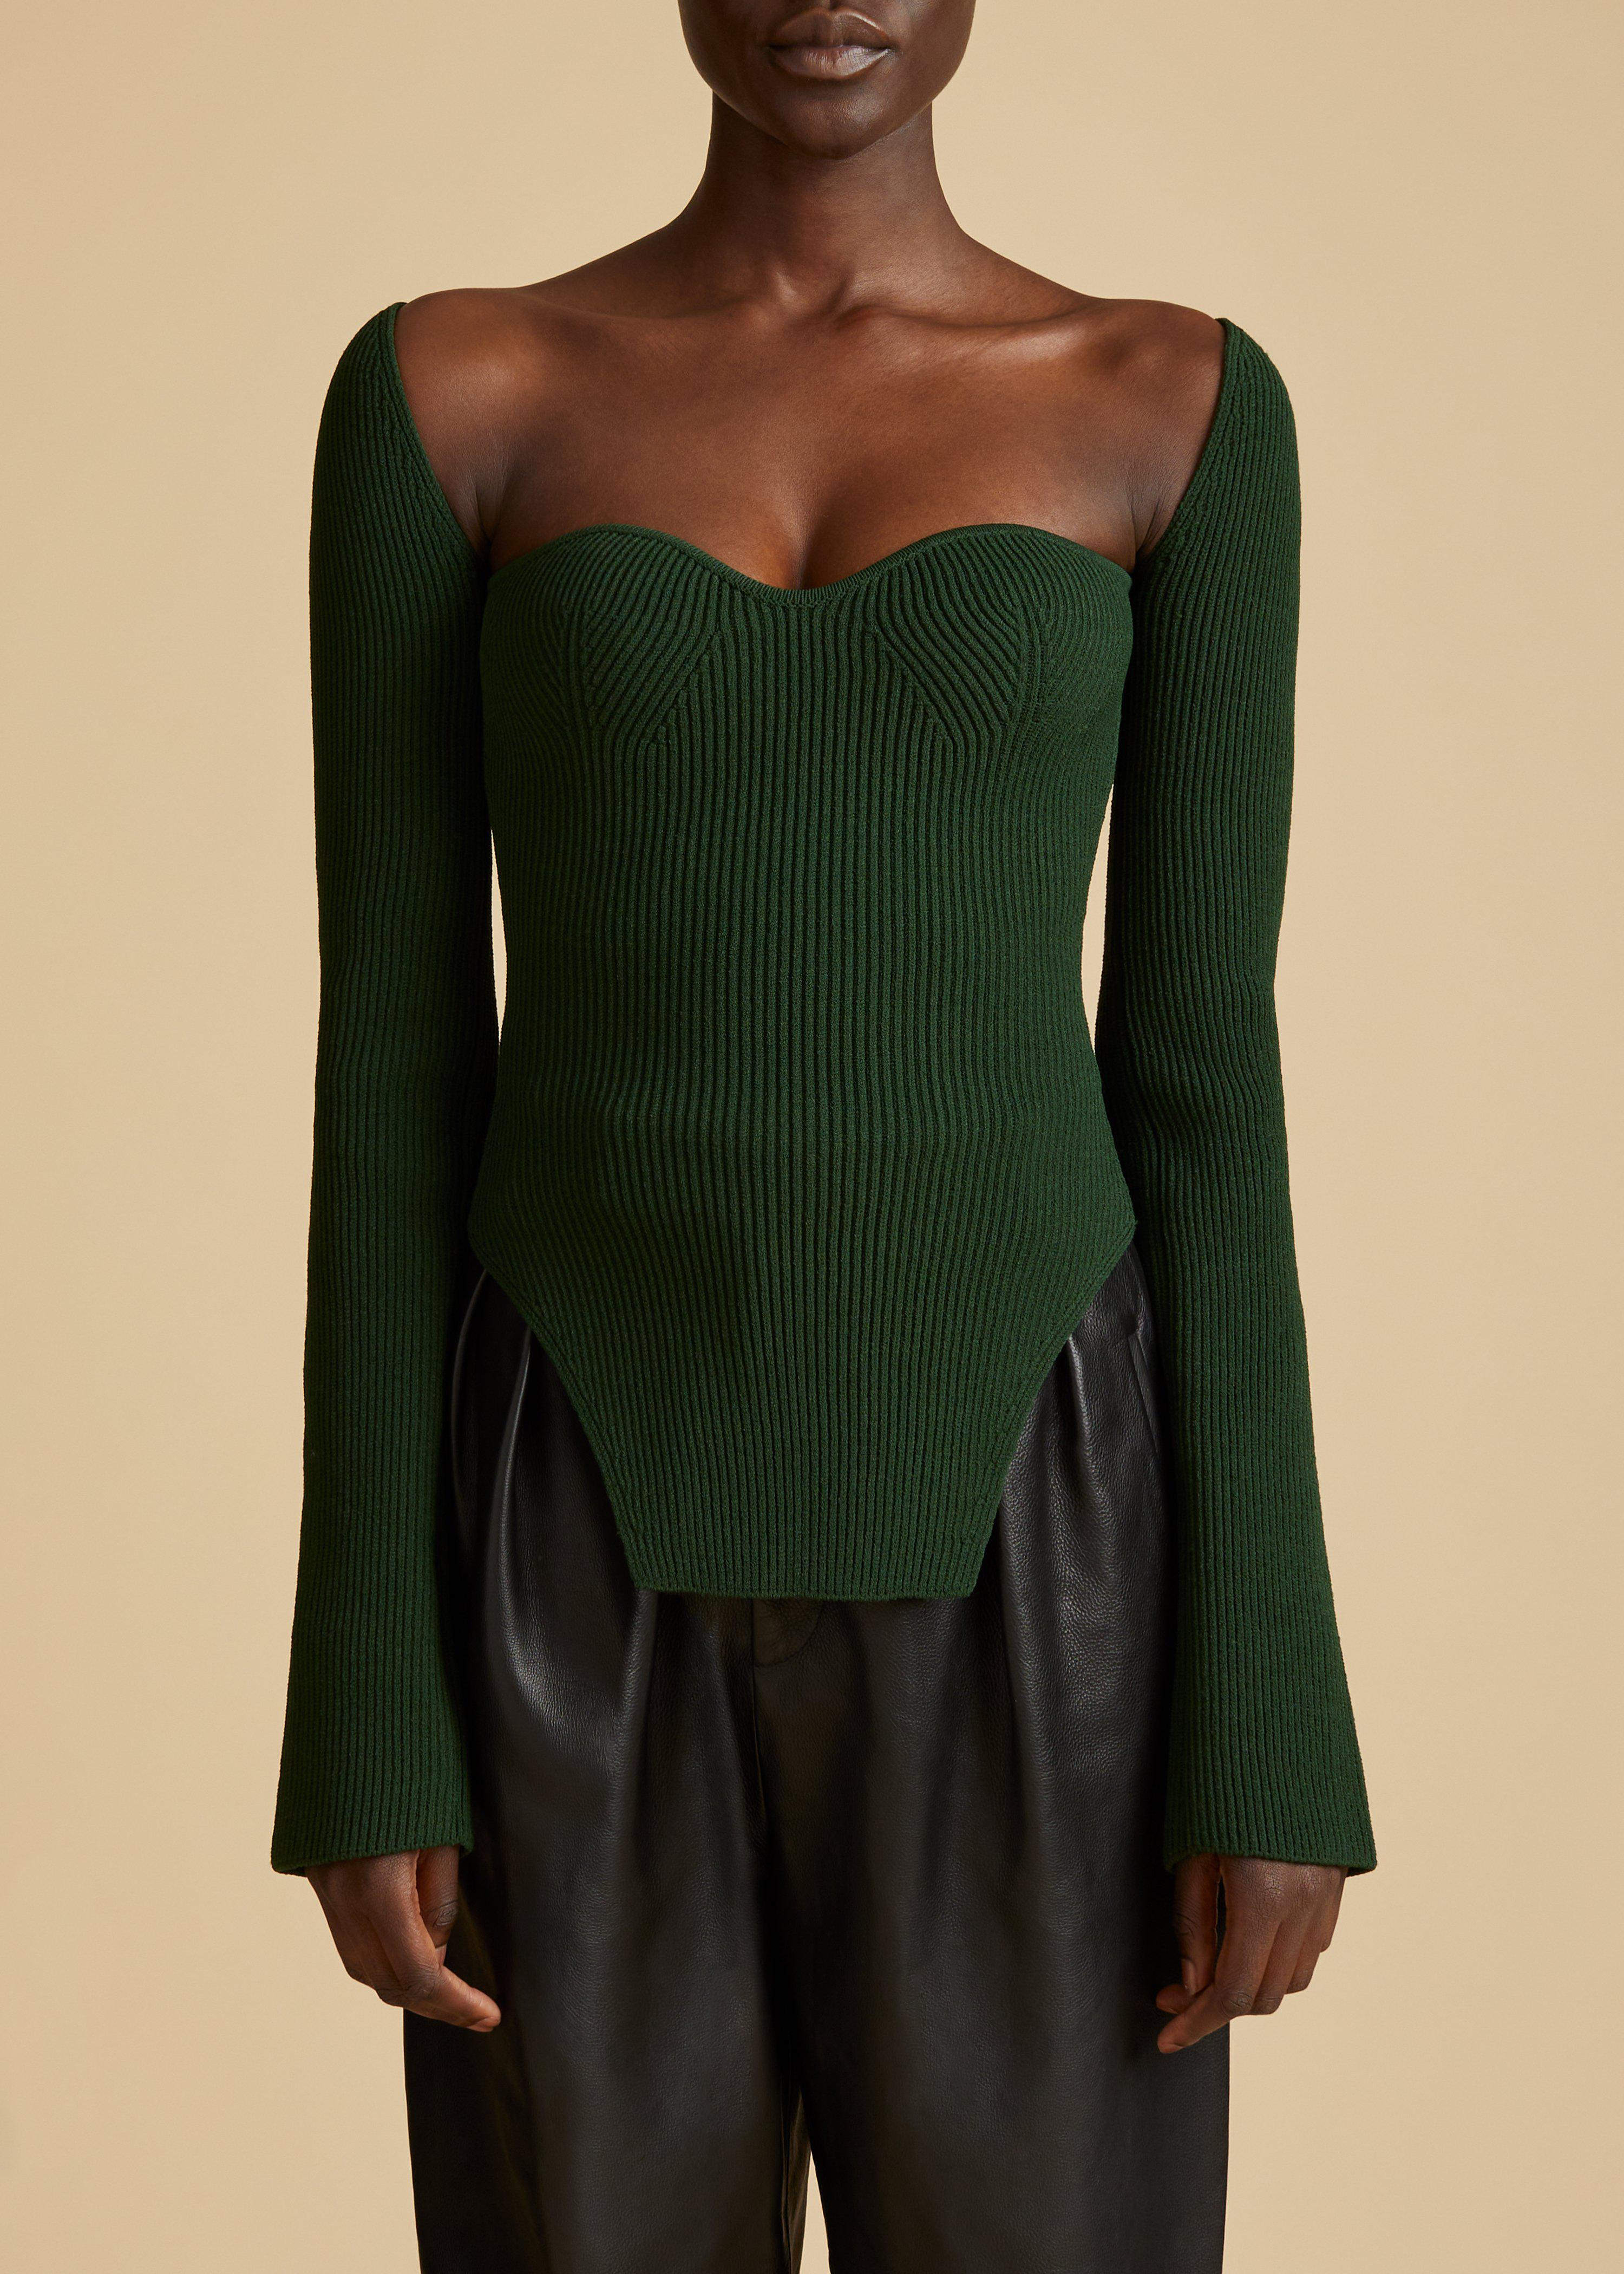 The Maddy Top in Deep Vert 0